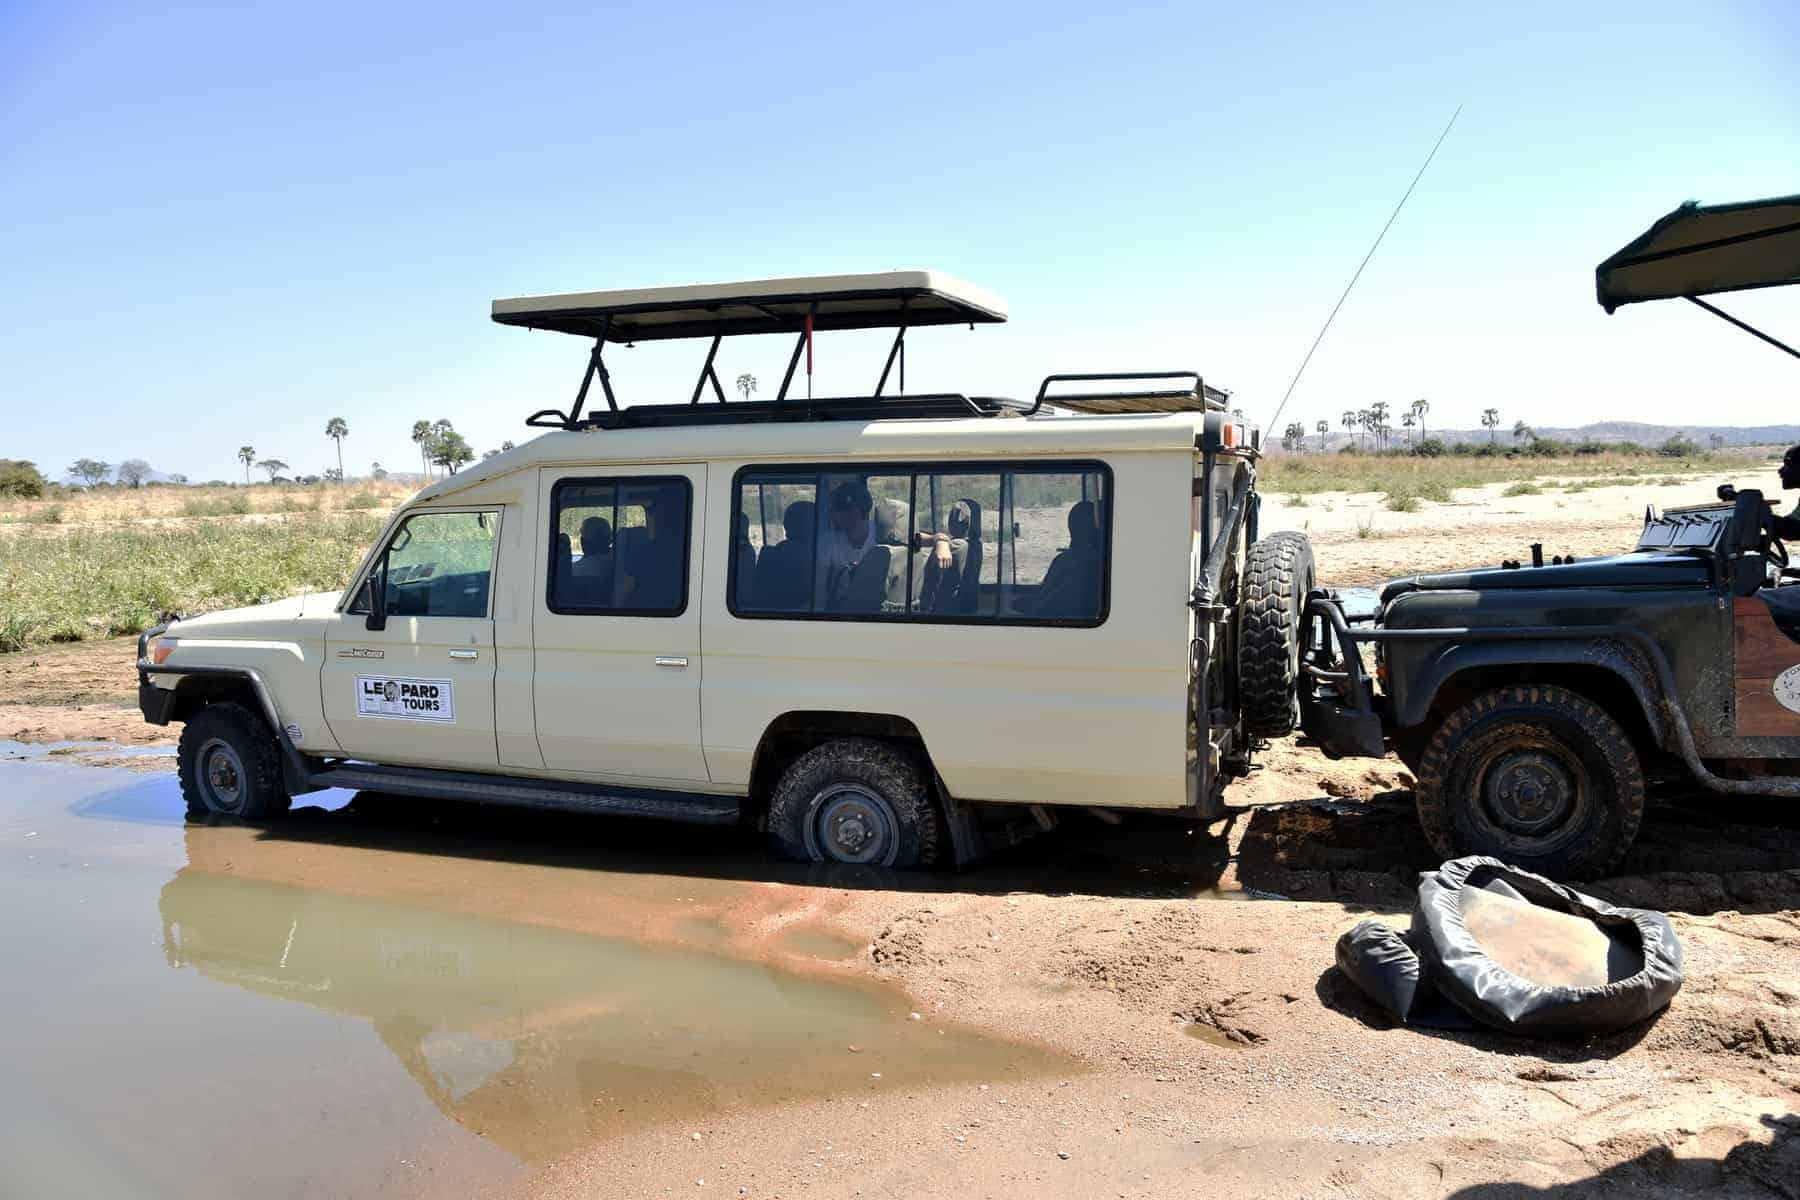 Ruaha National Park, Tanzania, Africa - August 6 2018: a safari car is stuck in the river while another car is trying to push it out, Ruaha National park, Tanzania.